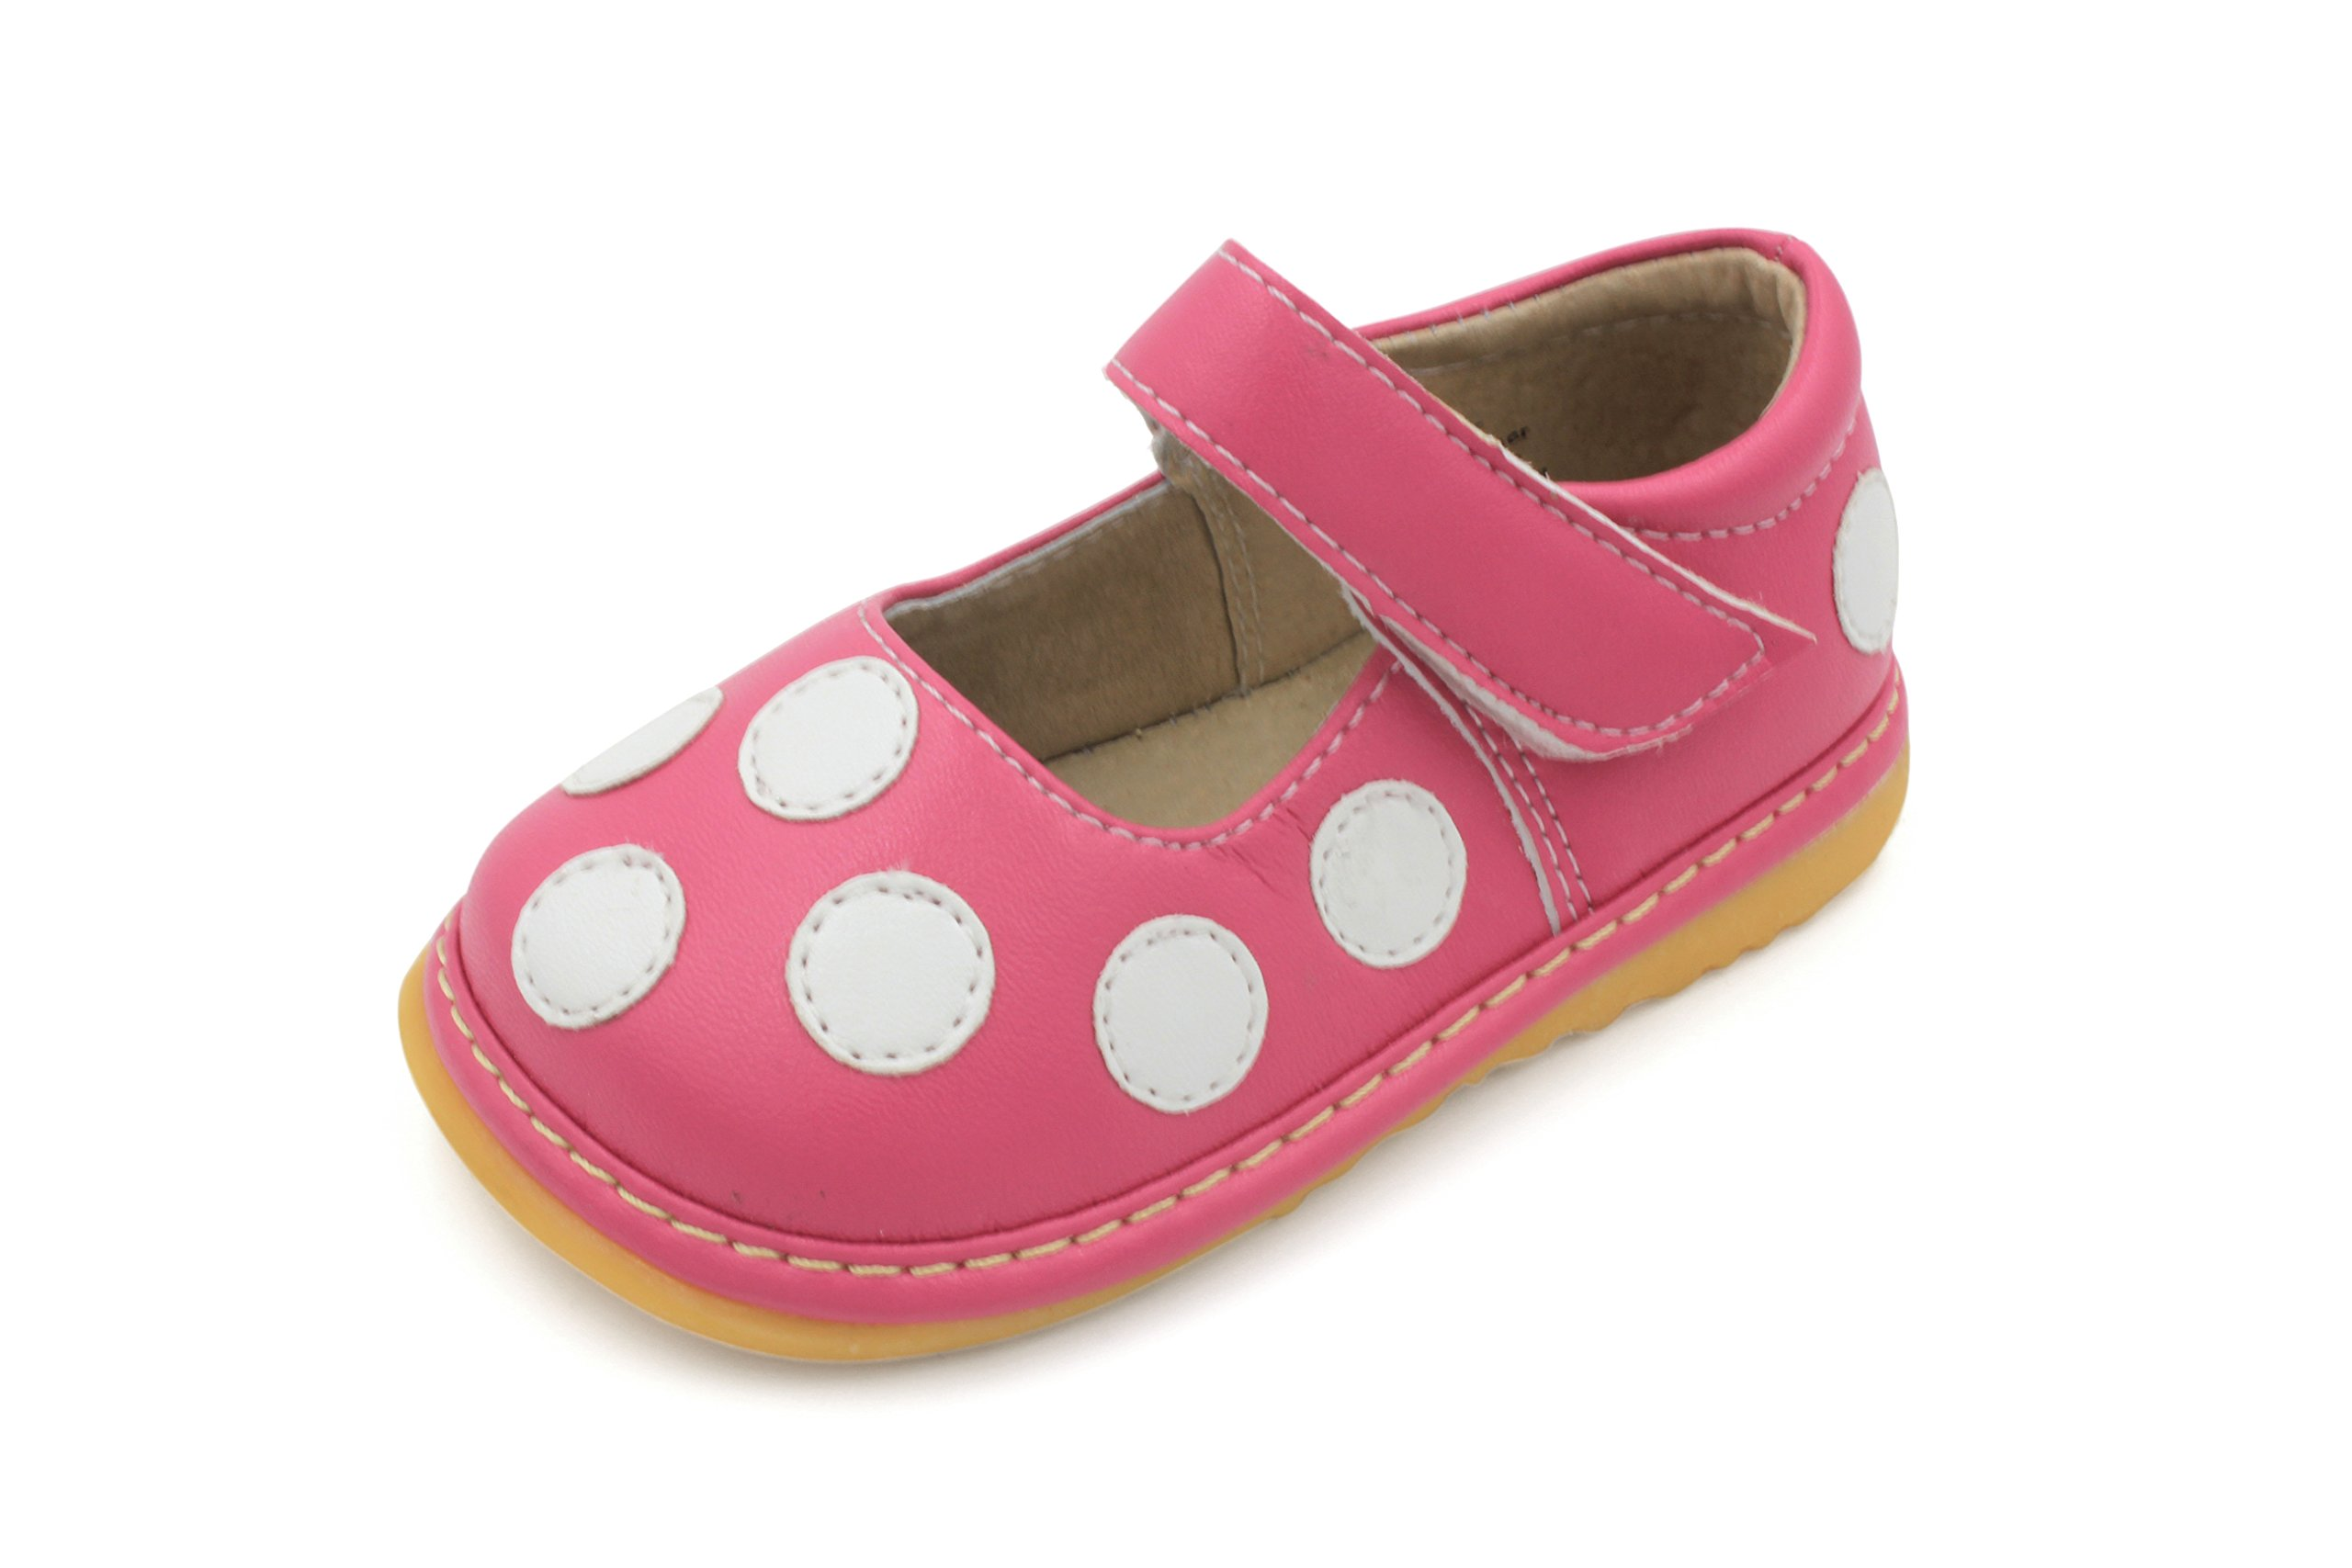 Little Mae's Boutique Squeaky Shoes | Hot Pink & White Polka-Dot Mary Jane Toddler Girl Shoes (5)